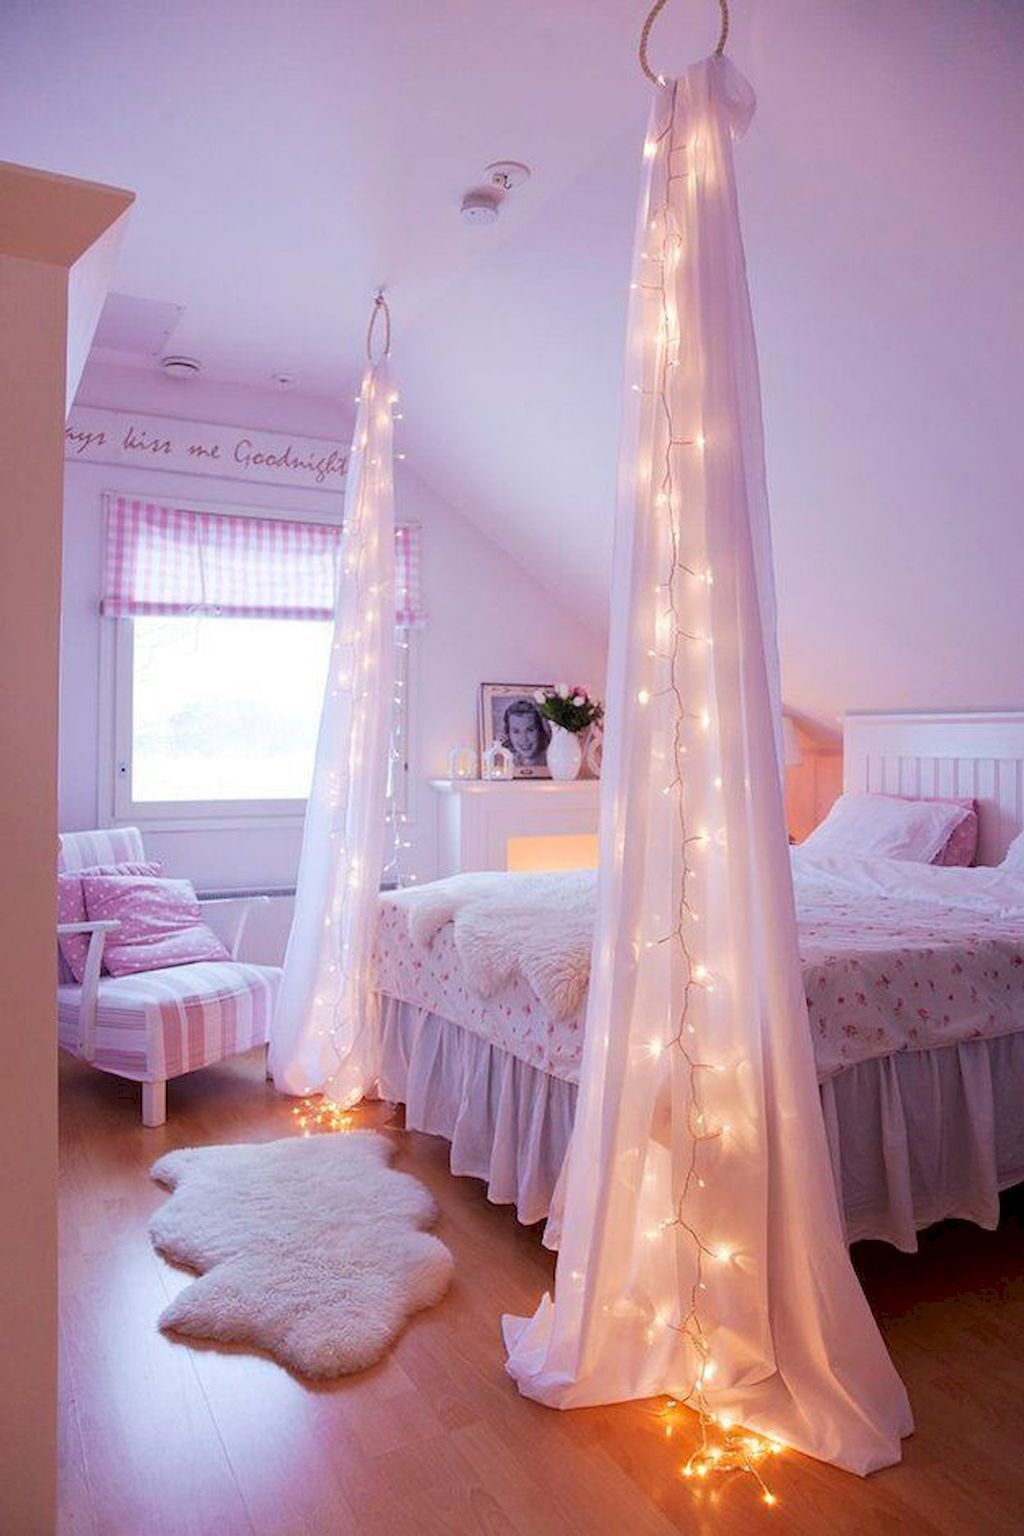 40 Cute Unicorn Bedroom Design 42 For The Home Girl Bedroom